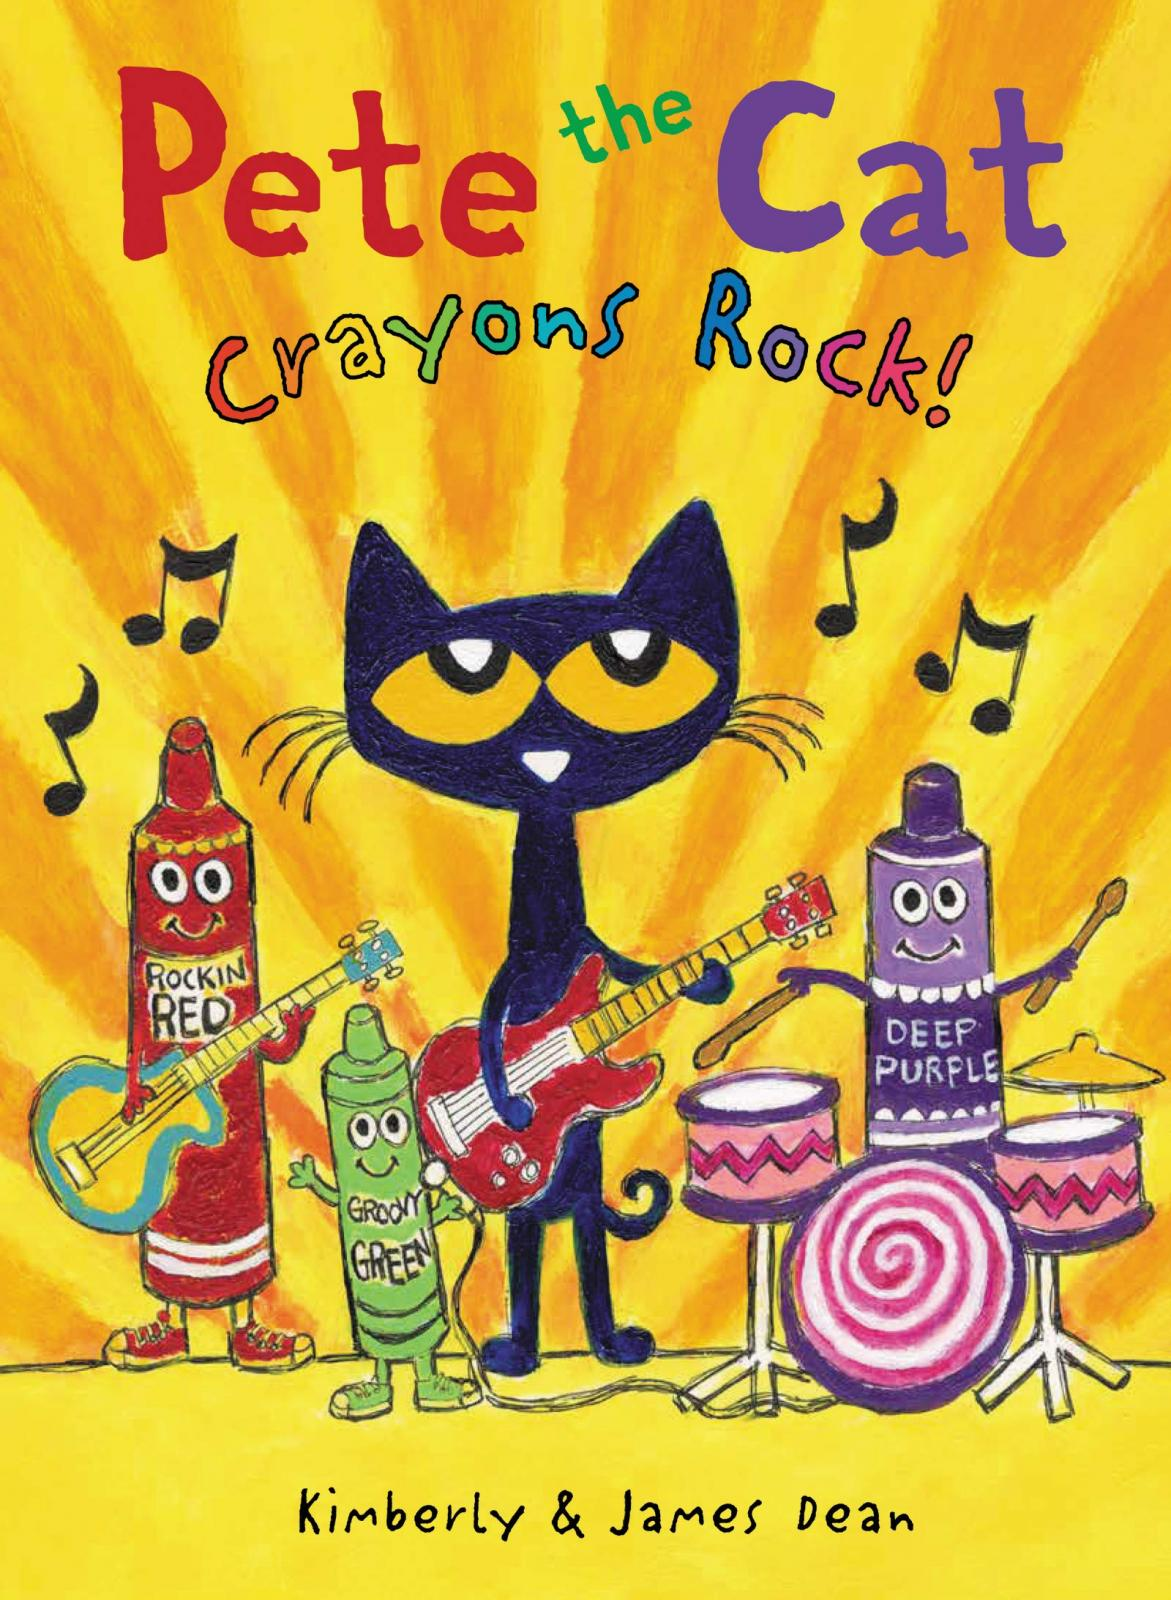 Pete the cat : crayons rock!